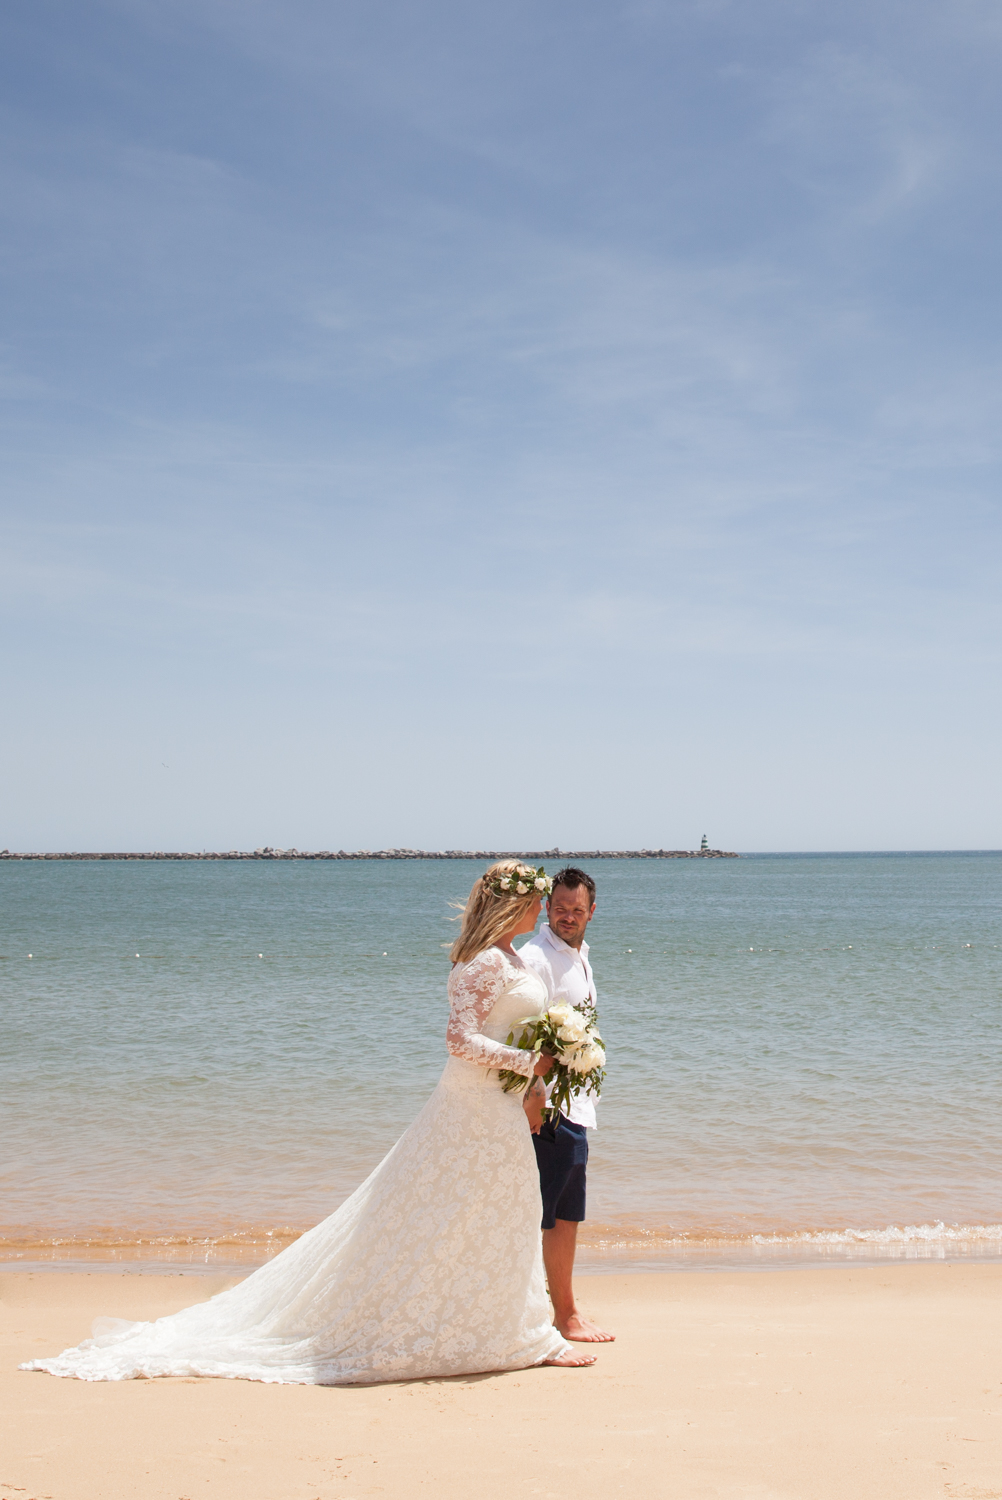 WEDDING_PORTUGAL_NOSOLOAGUA_CAVE_PICTORIAL_BERWICK-2453.jpg